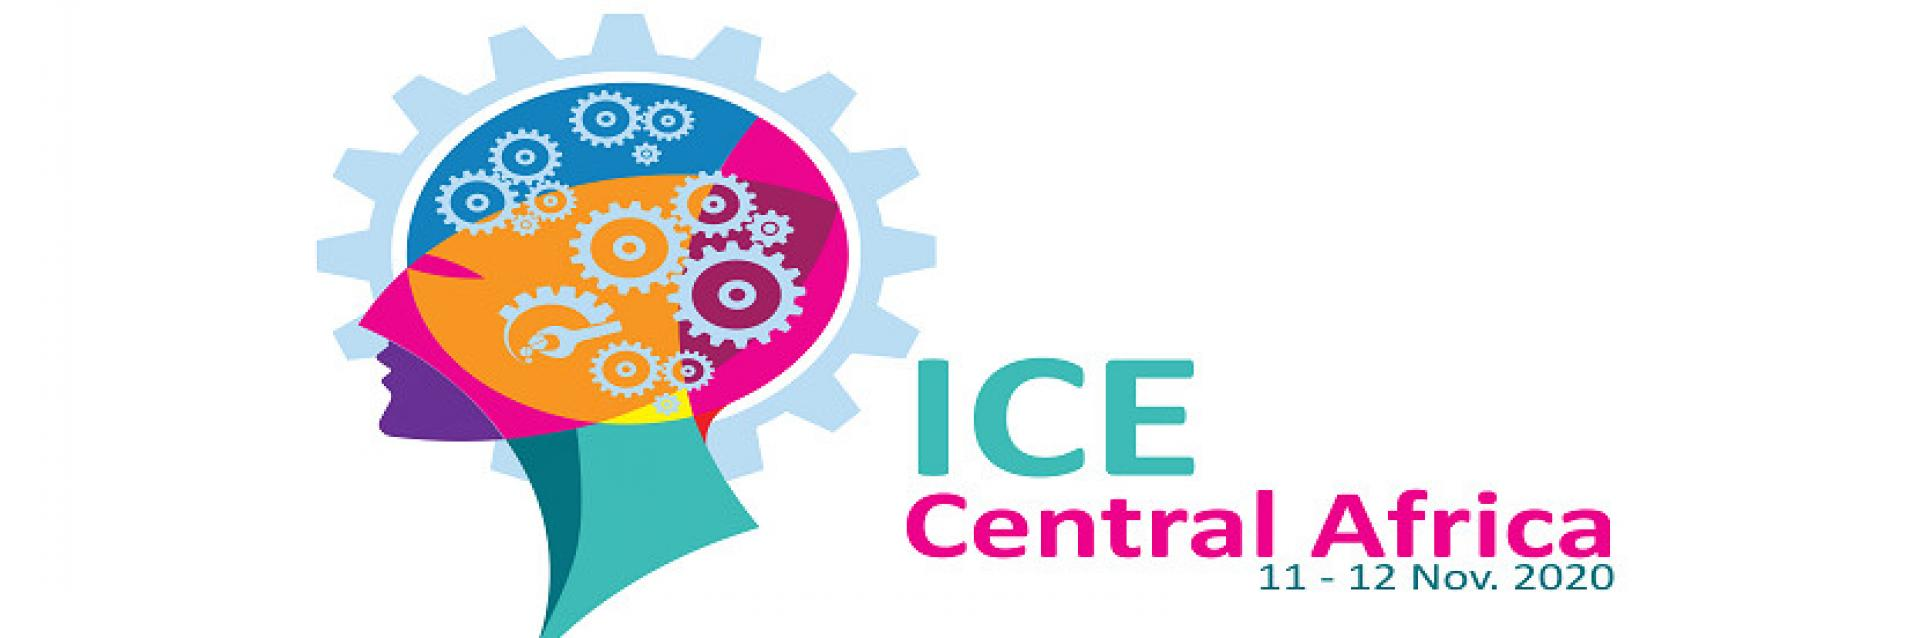 Intergovernmental Committee of Senior Officials and Experts (ICE) for Central Africa